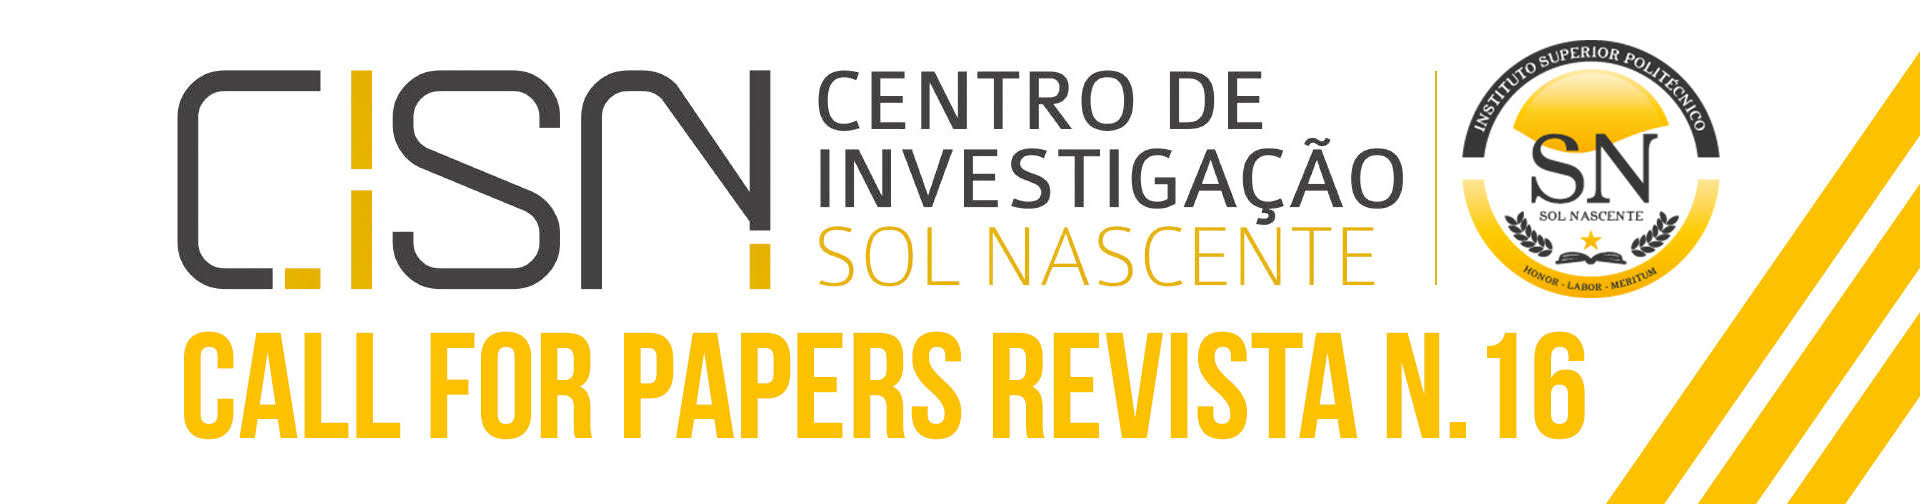 Call for Papers - Revista n. 16